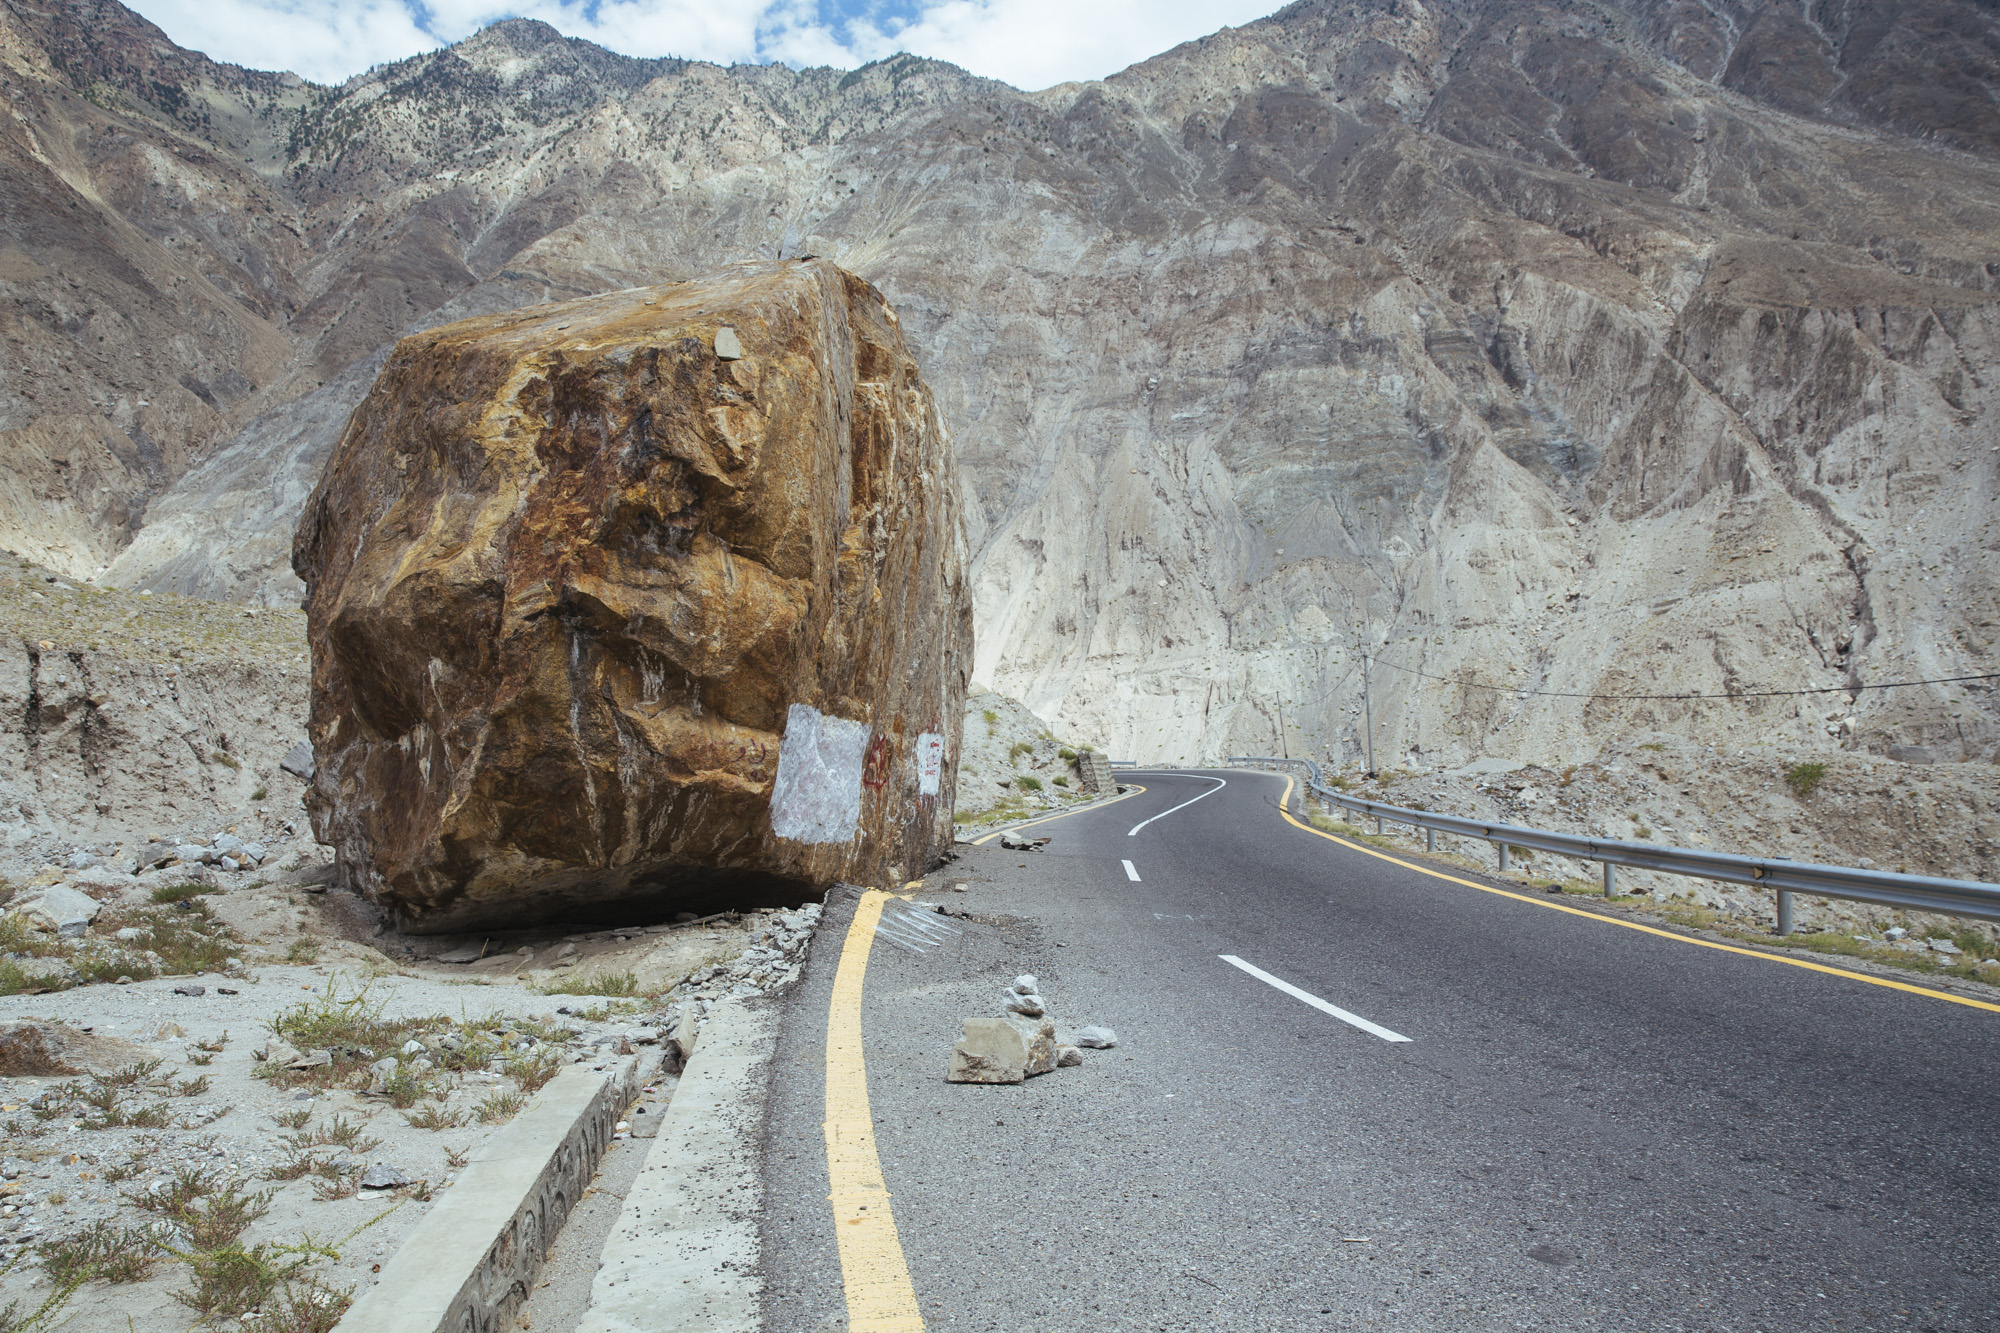 One of the bigger rocks that had fallen onto the street